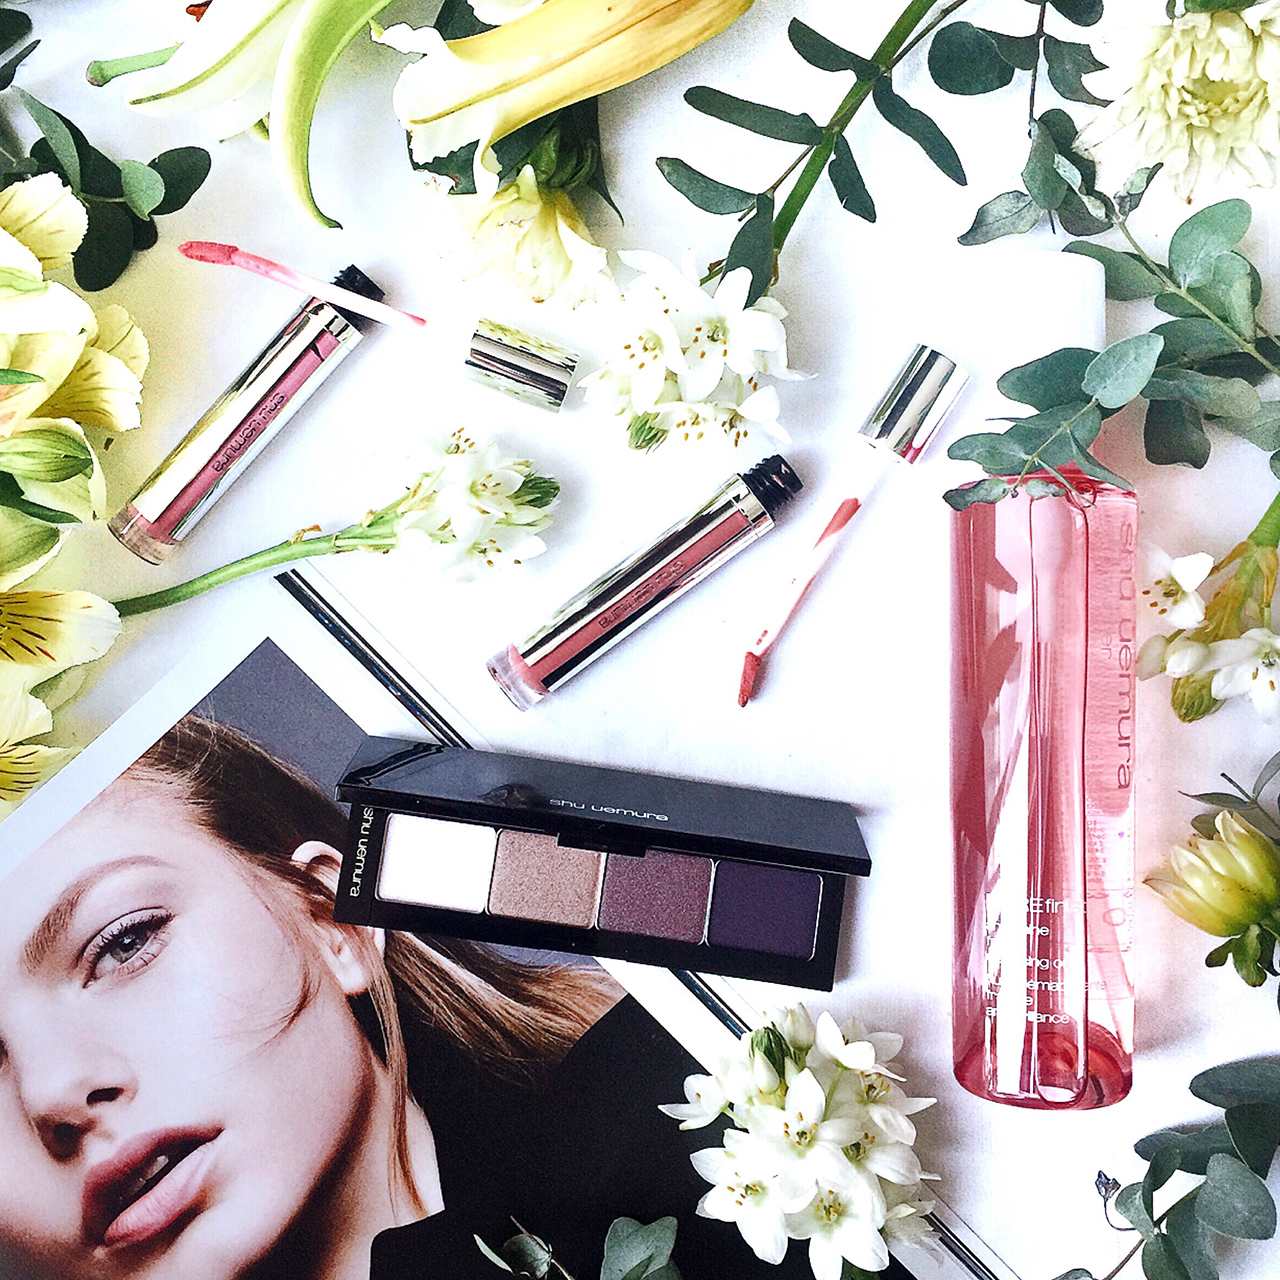 Shu Uemura Vision of Beauty Vol. 3 Nude Atelier for Fall 2016